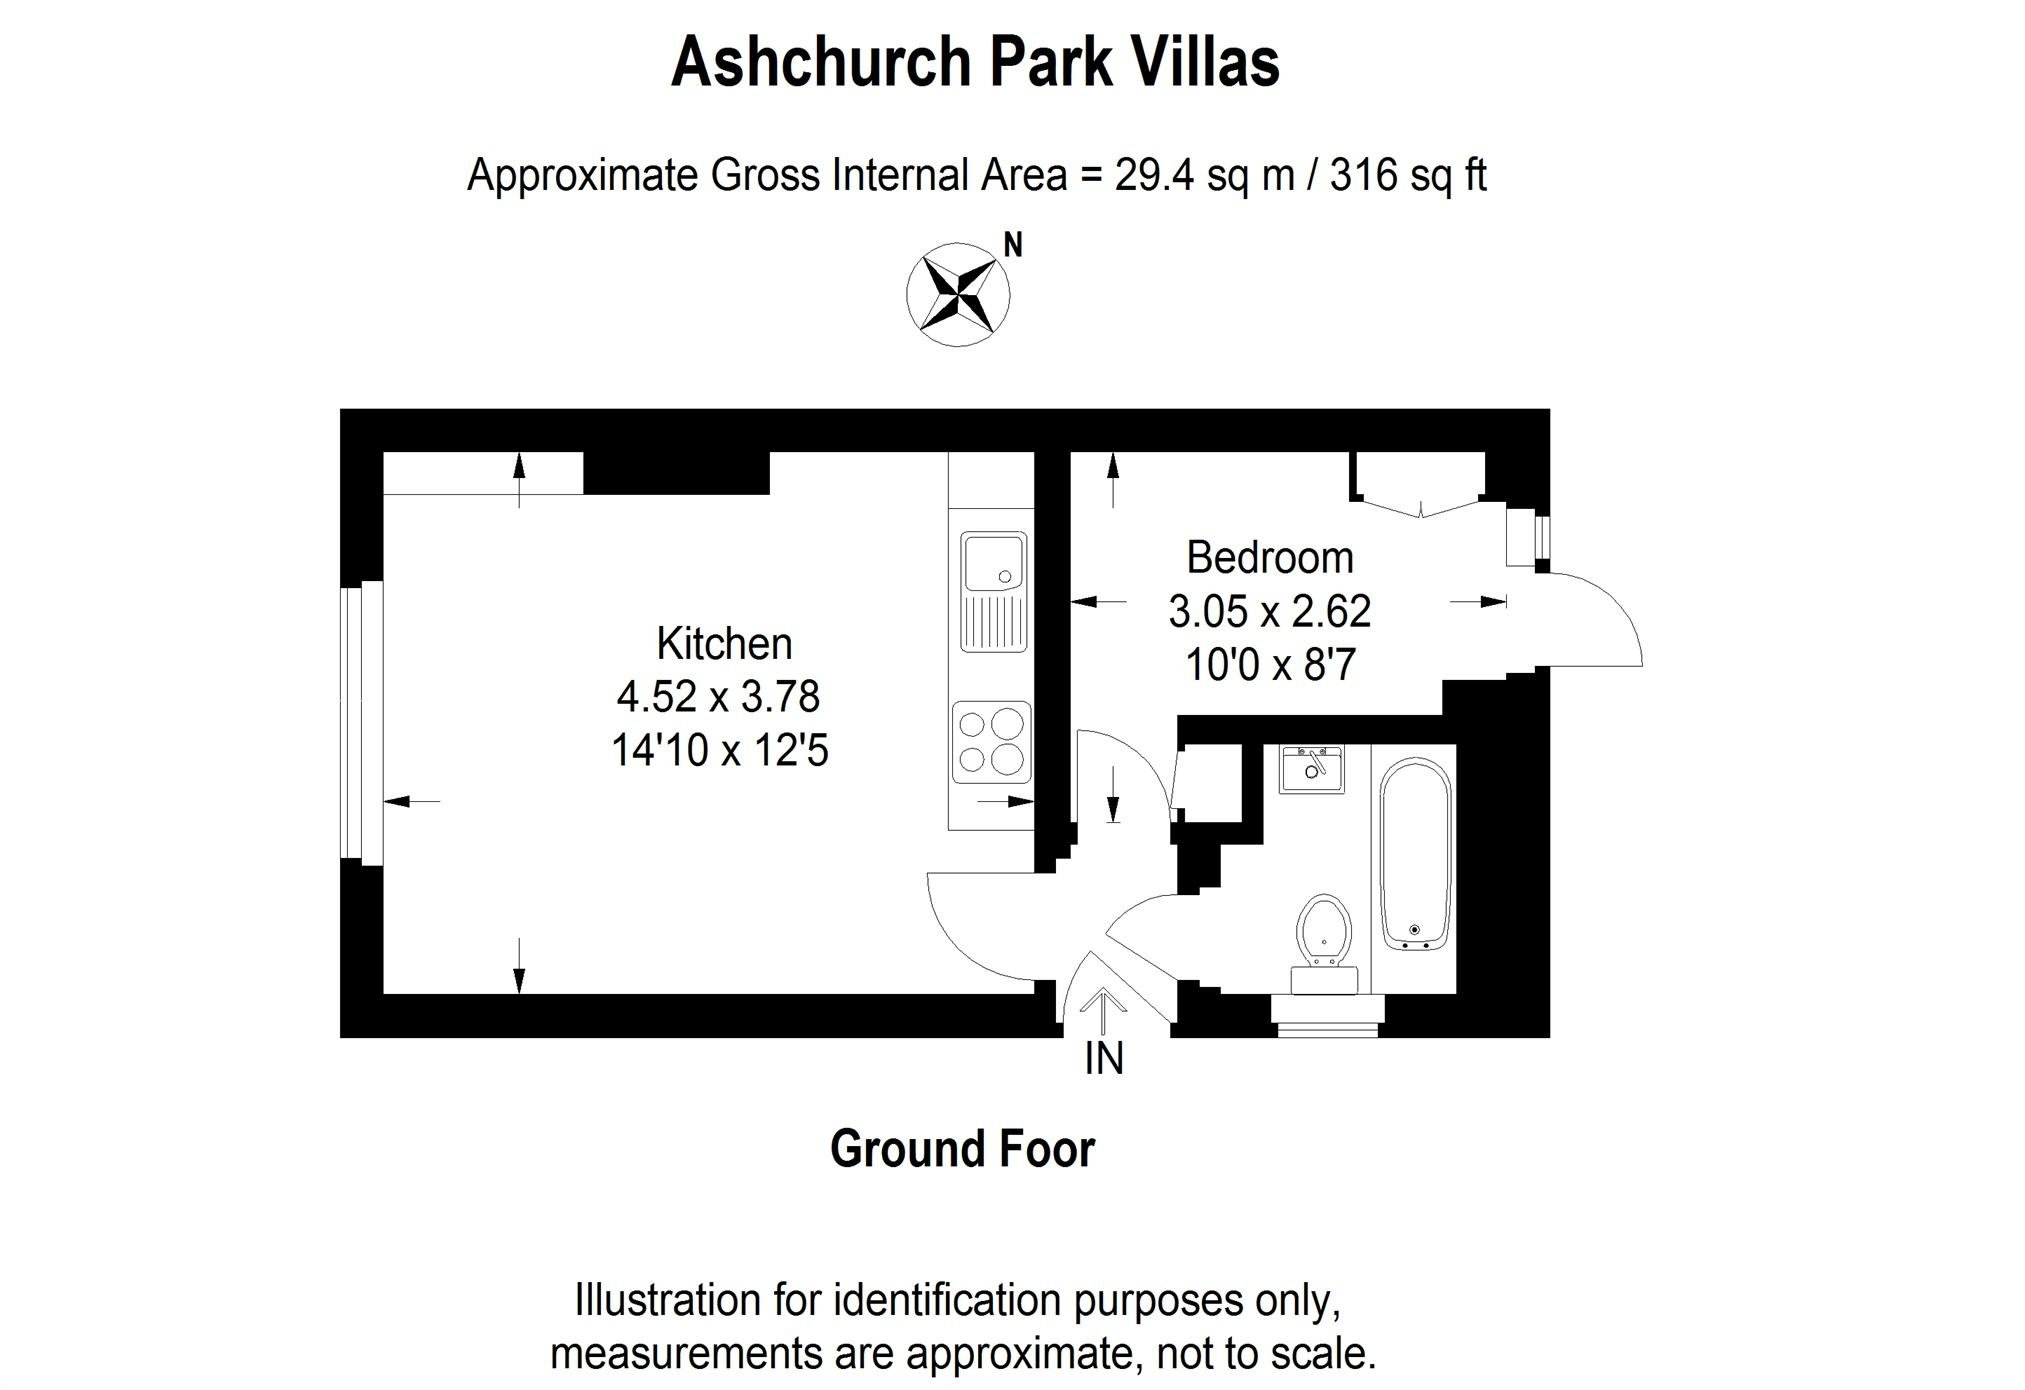 Flat For Sale In Ashchurch Park Villas Ravenscourt Park